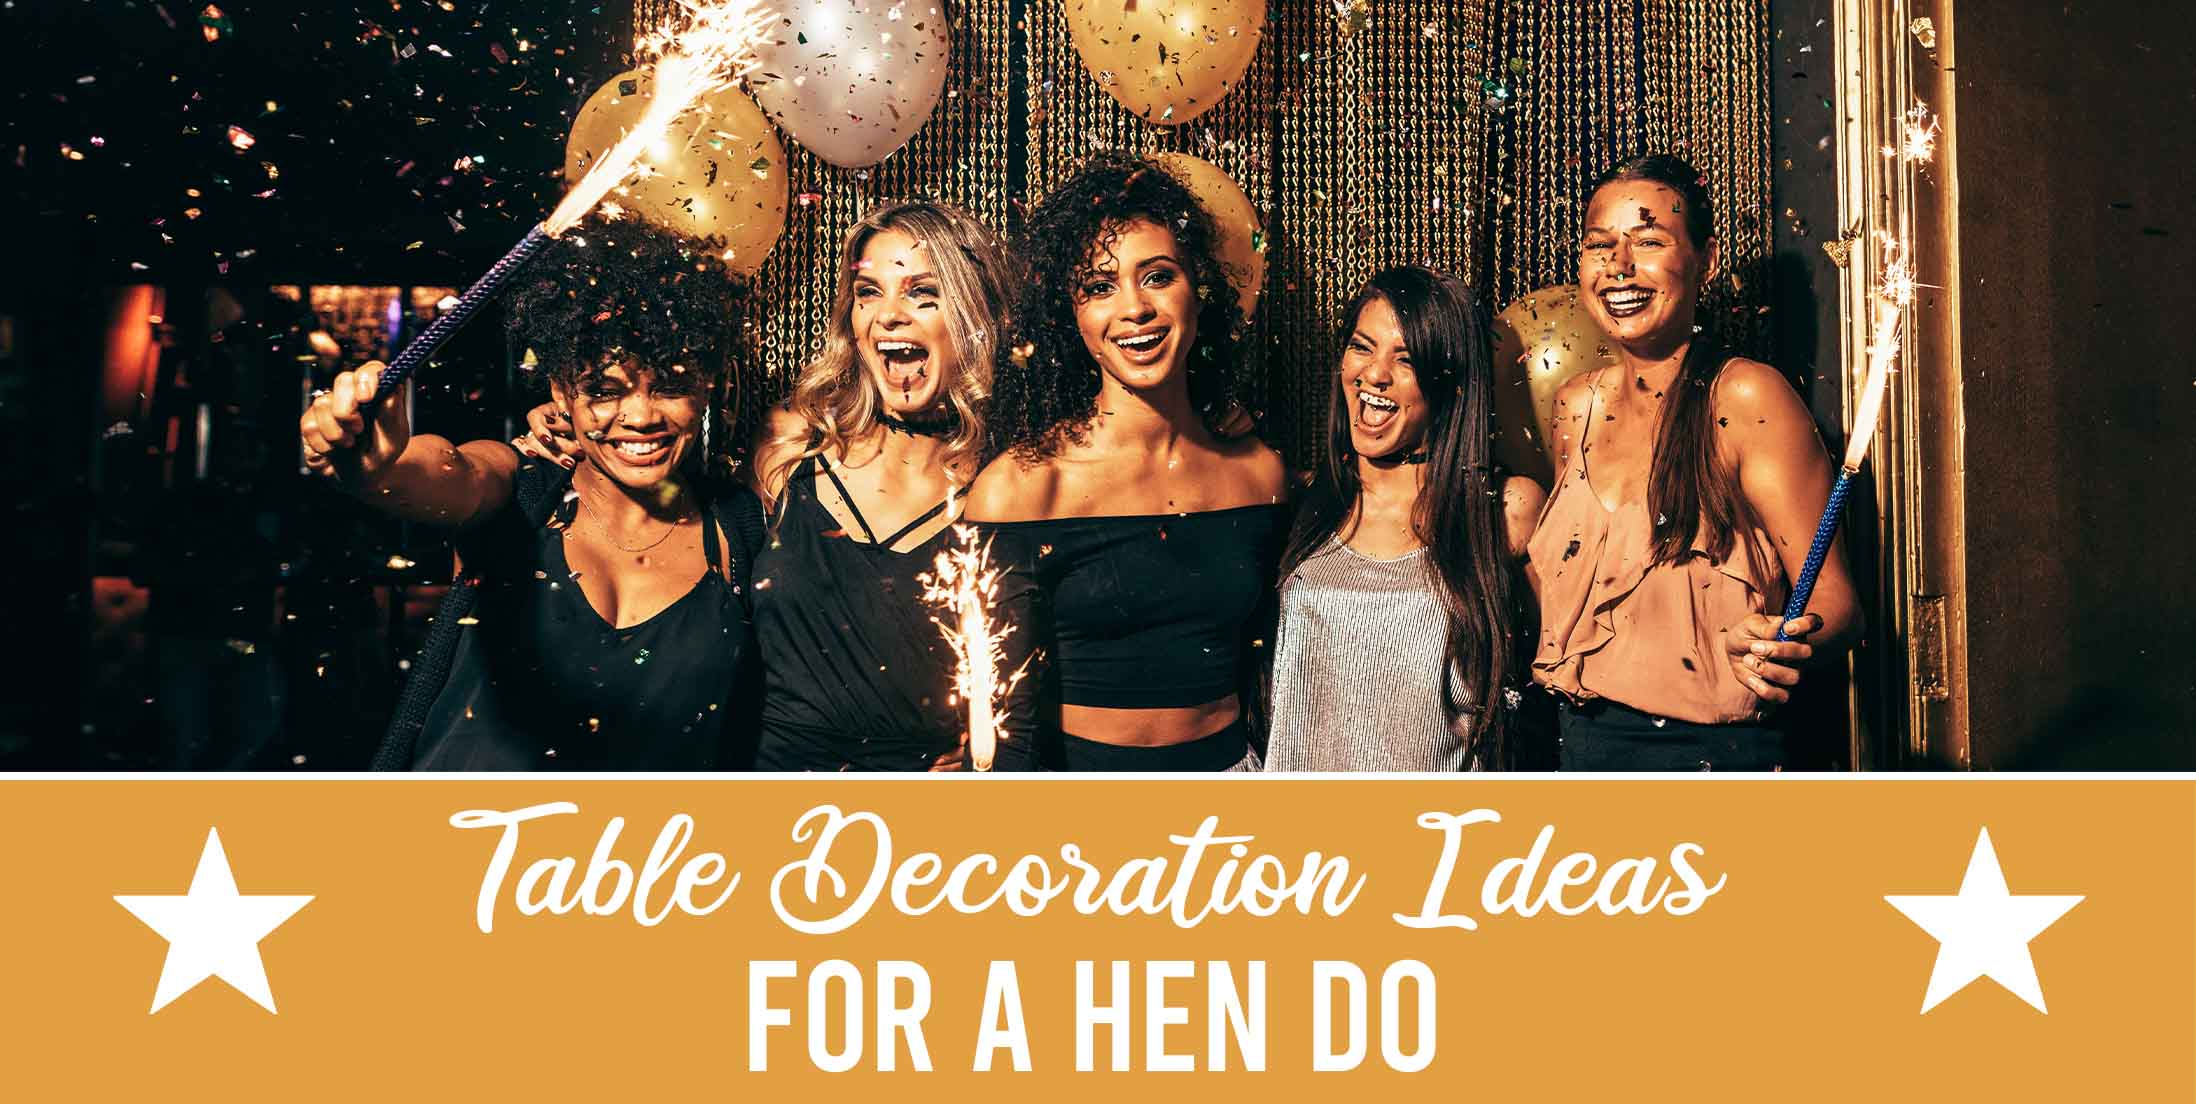 Table Decoration Ideas for a Hen Do